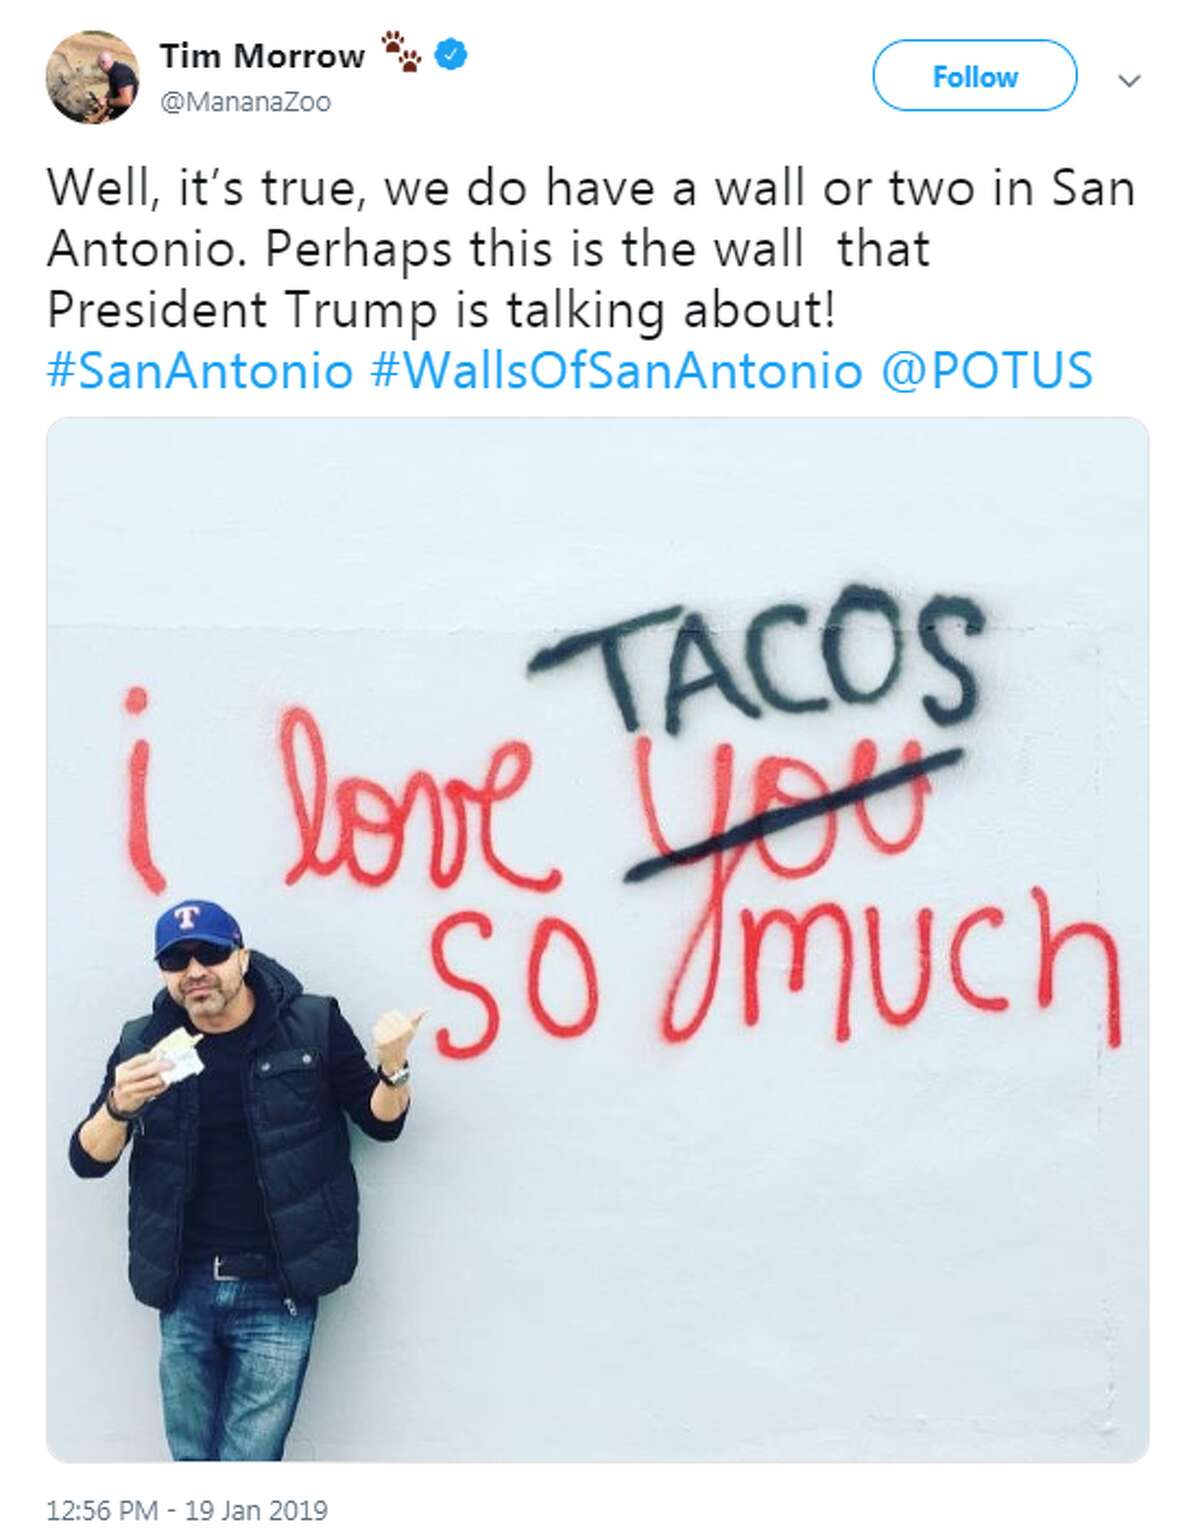 """@MananaZoo: """"Well, it's true, we do have a wall or two in San Antonio. Perhaps this is the wall that President Trump is talking about!"""""""